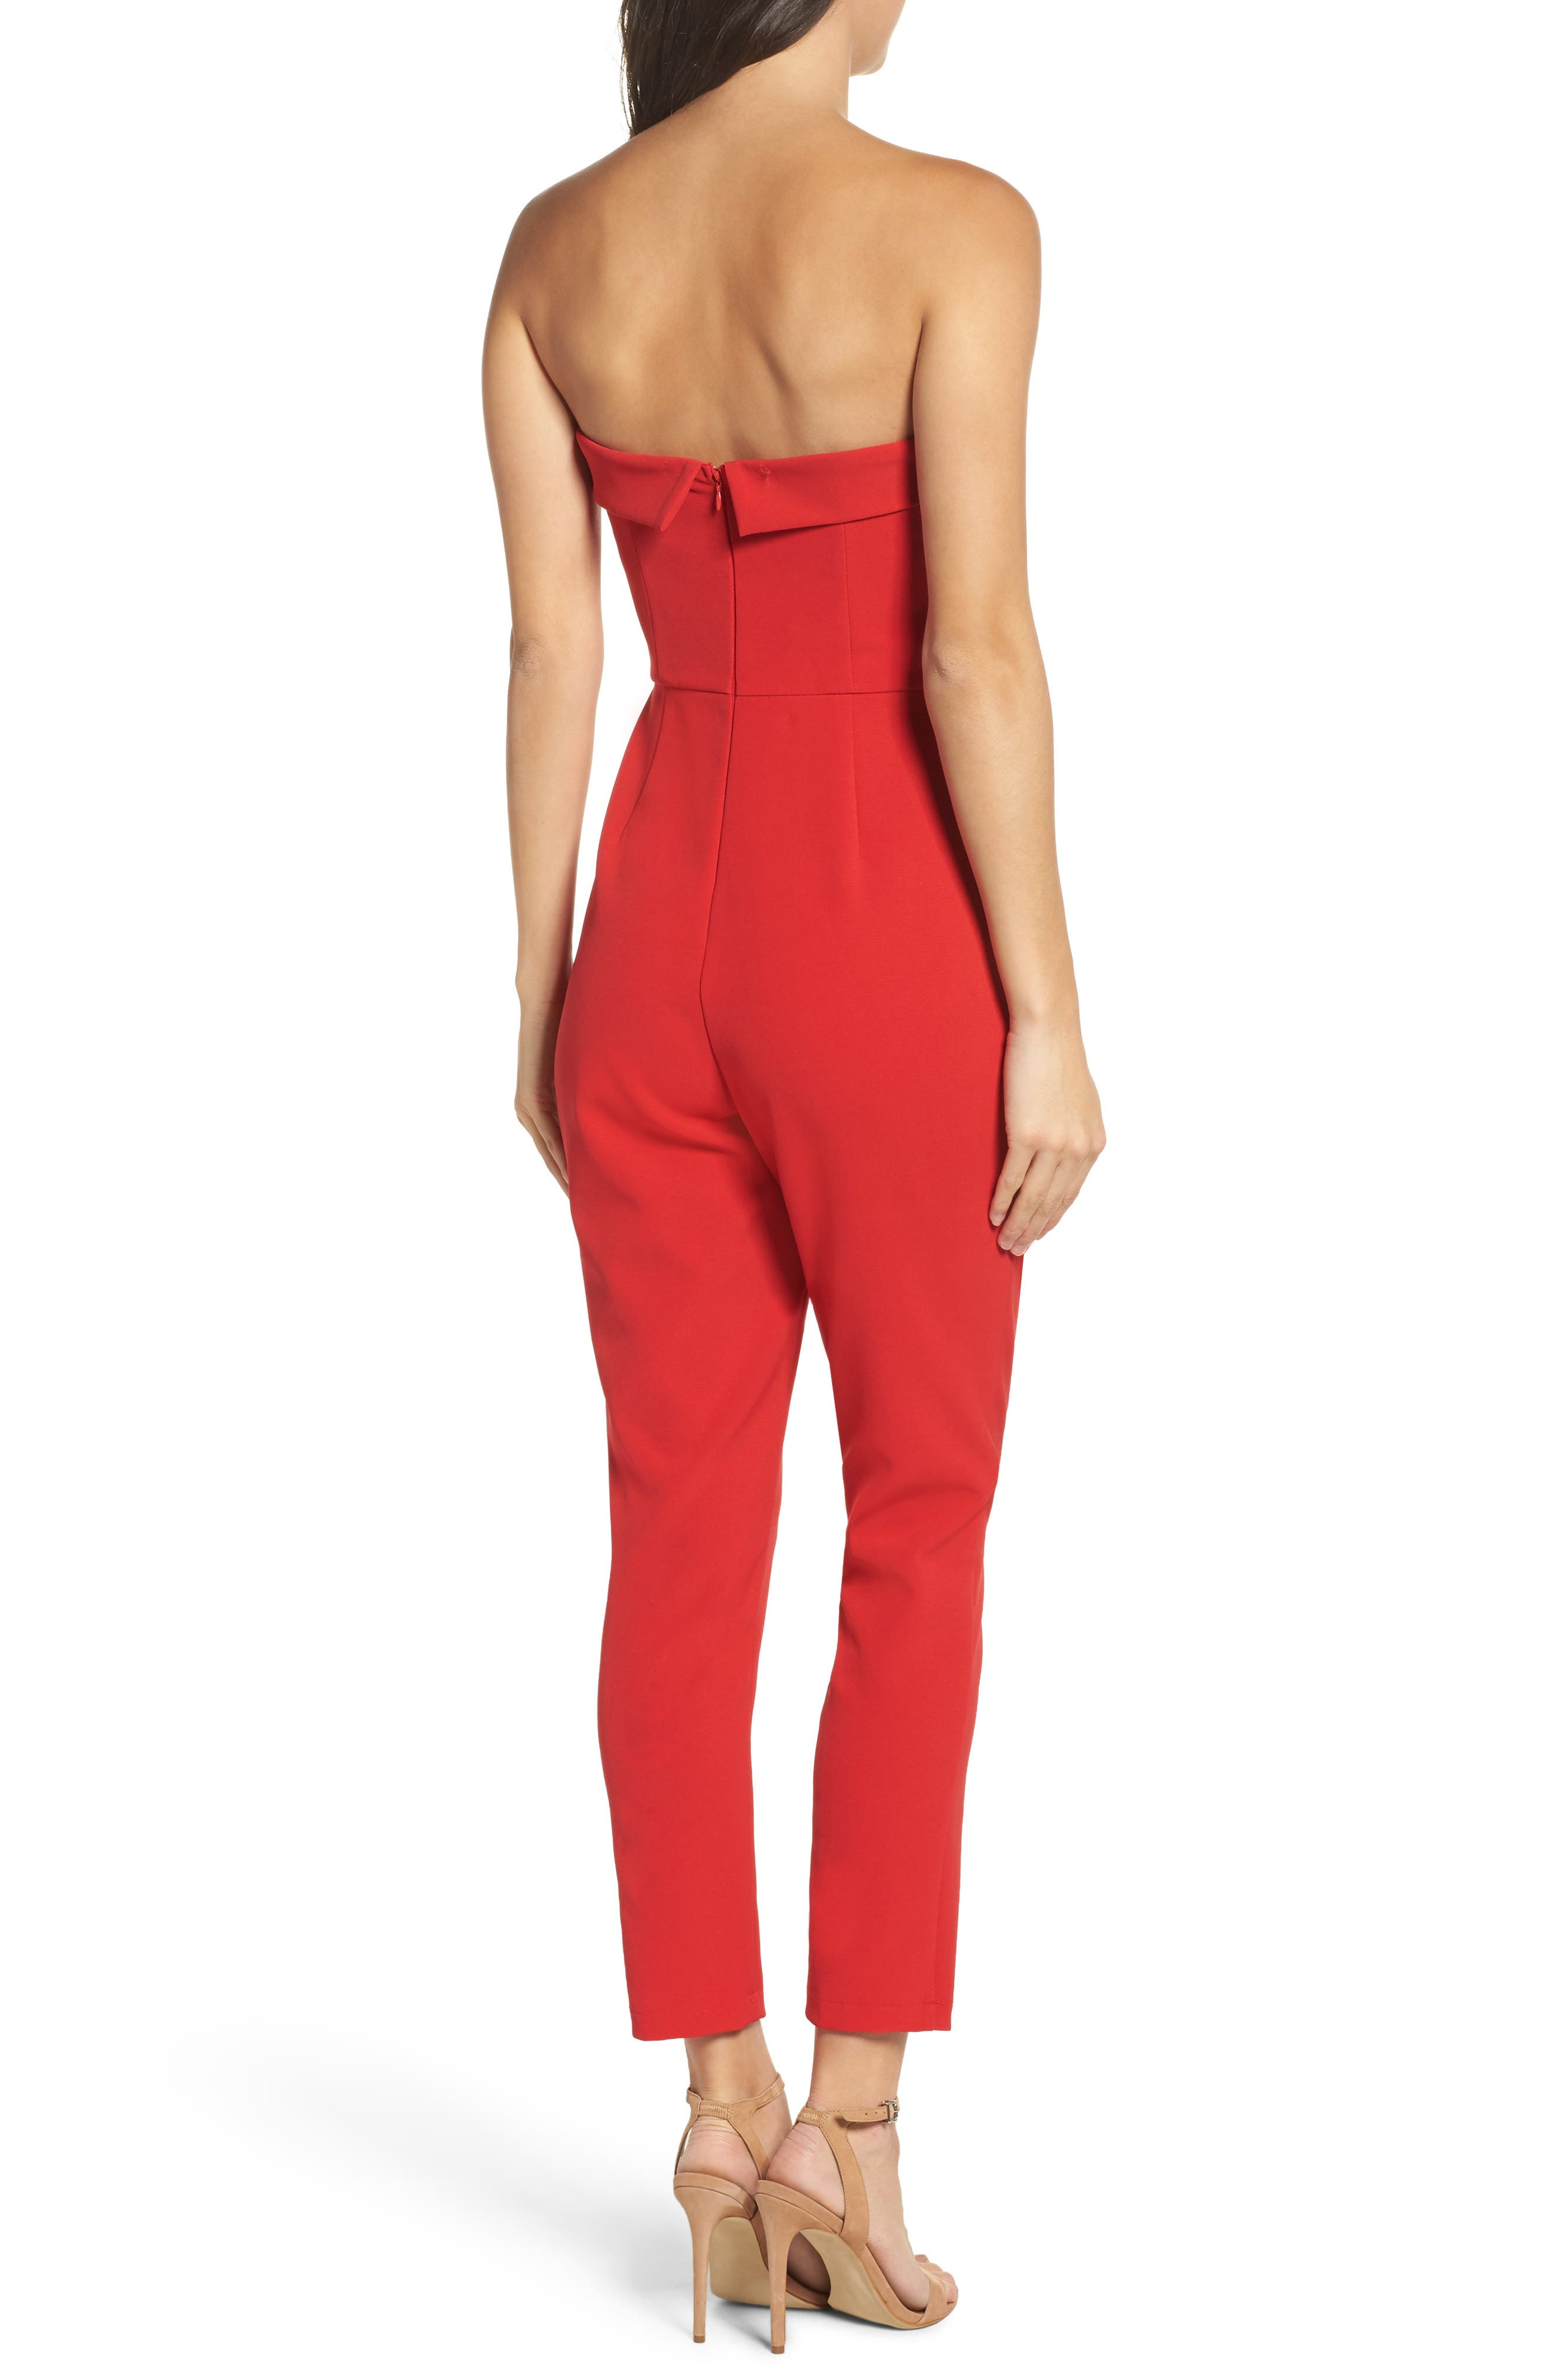 Malia Strapless Jumpsuit,                             Alternate thumbnail 2, color,                             Red